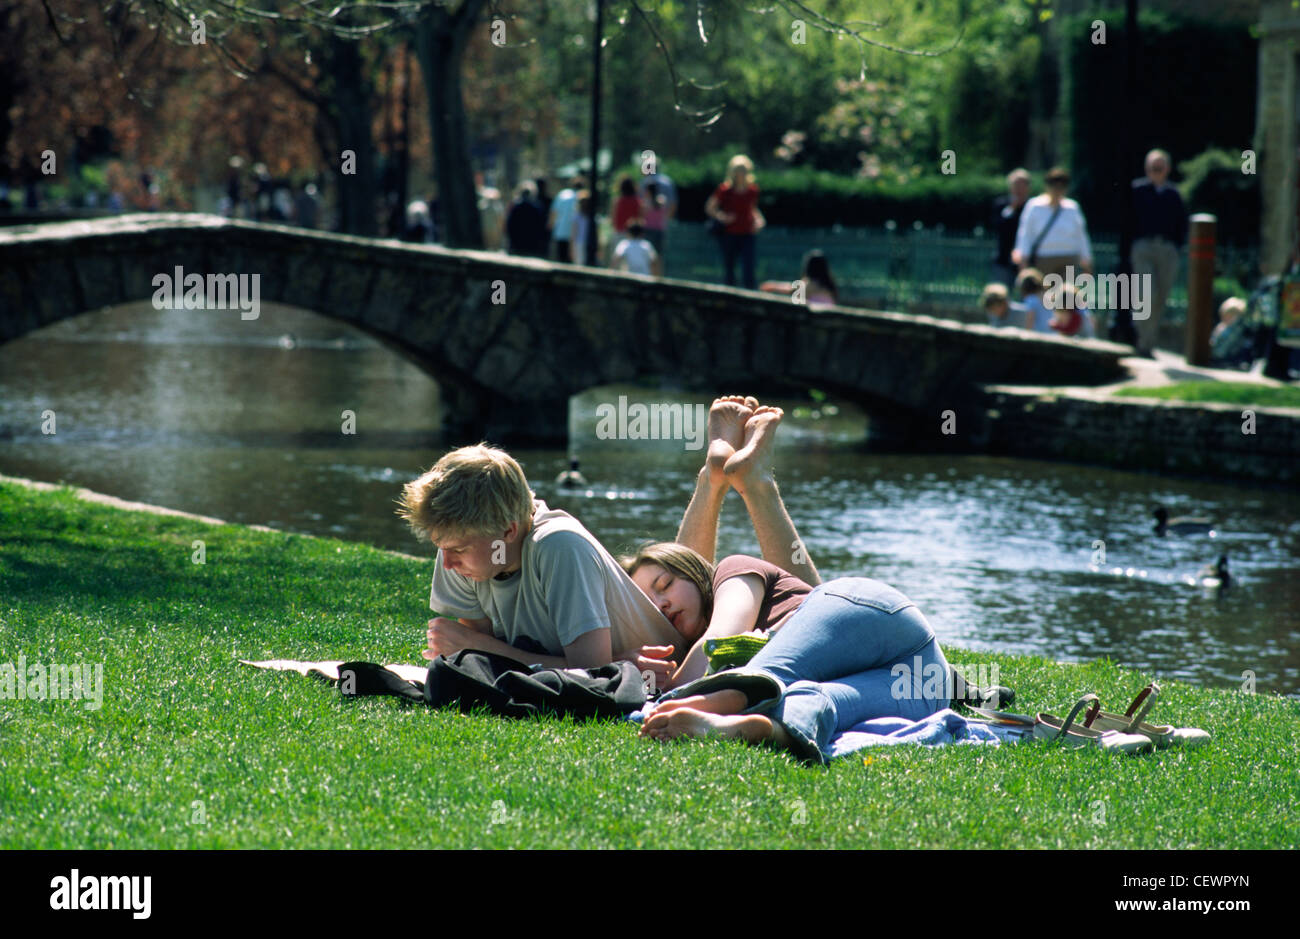 Lazy days on the riverbank at Bourton-on-the-Water in the Cotswolds. - Stock Image